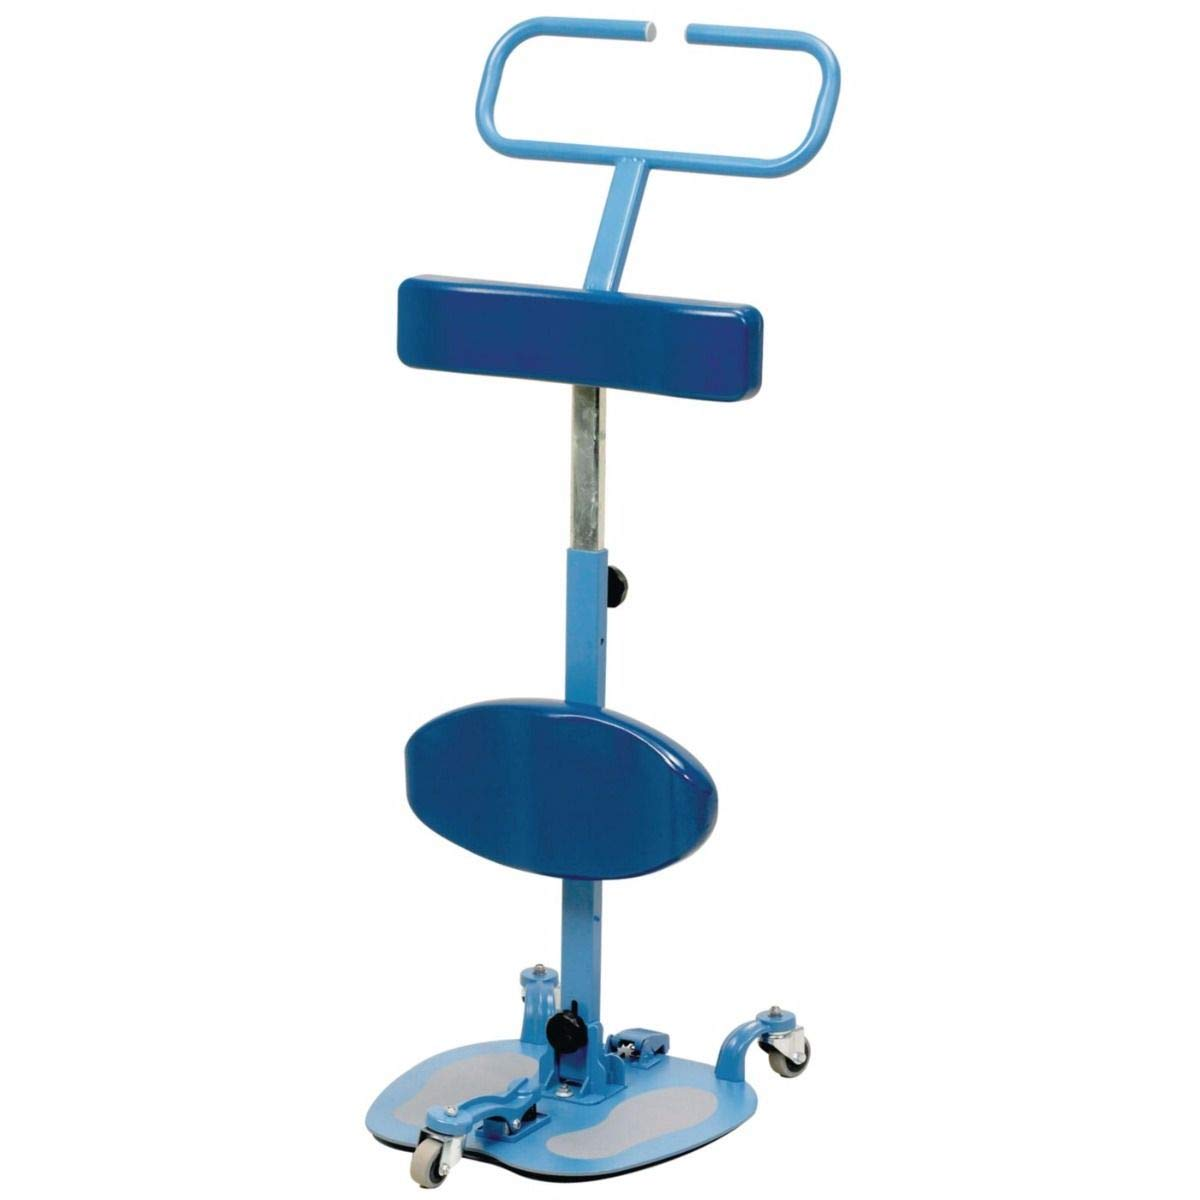 Days Orbi-Turn, Patient Transfer Aid for Standing & Seating Positioning, Functional Transfer Device for Weak or Limited Strength Patients, Ideal for Physical Therapy & Rehabilitation, 420 lb capacity